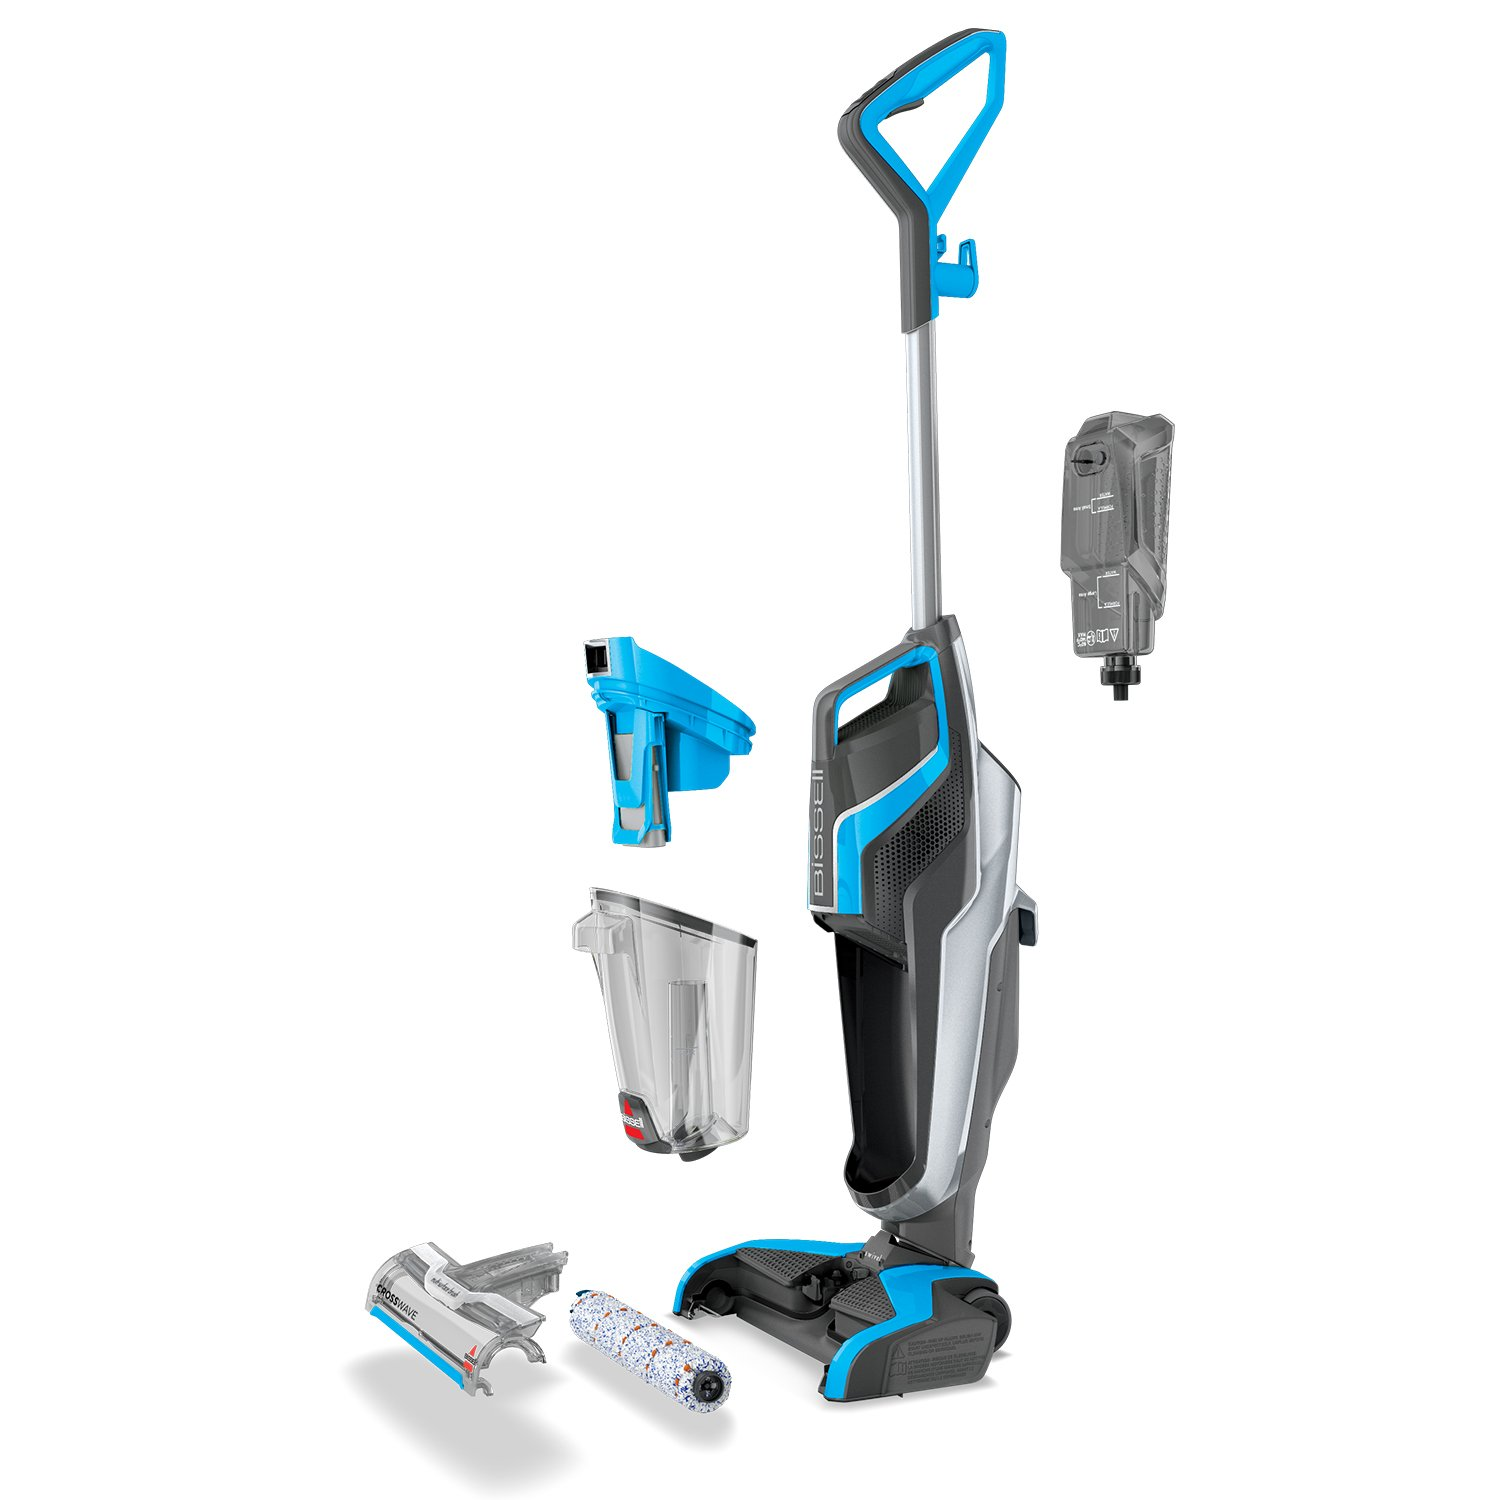 Bissell tile floor scrubbers choice image tile flooring design ideas bissell tile floor cleaner image collections tile flooring bissell crosswave hard floor cleaner vacuum and wash dailygadgetfo Choice Image